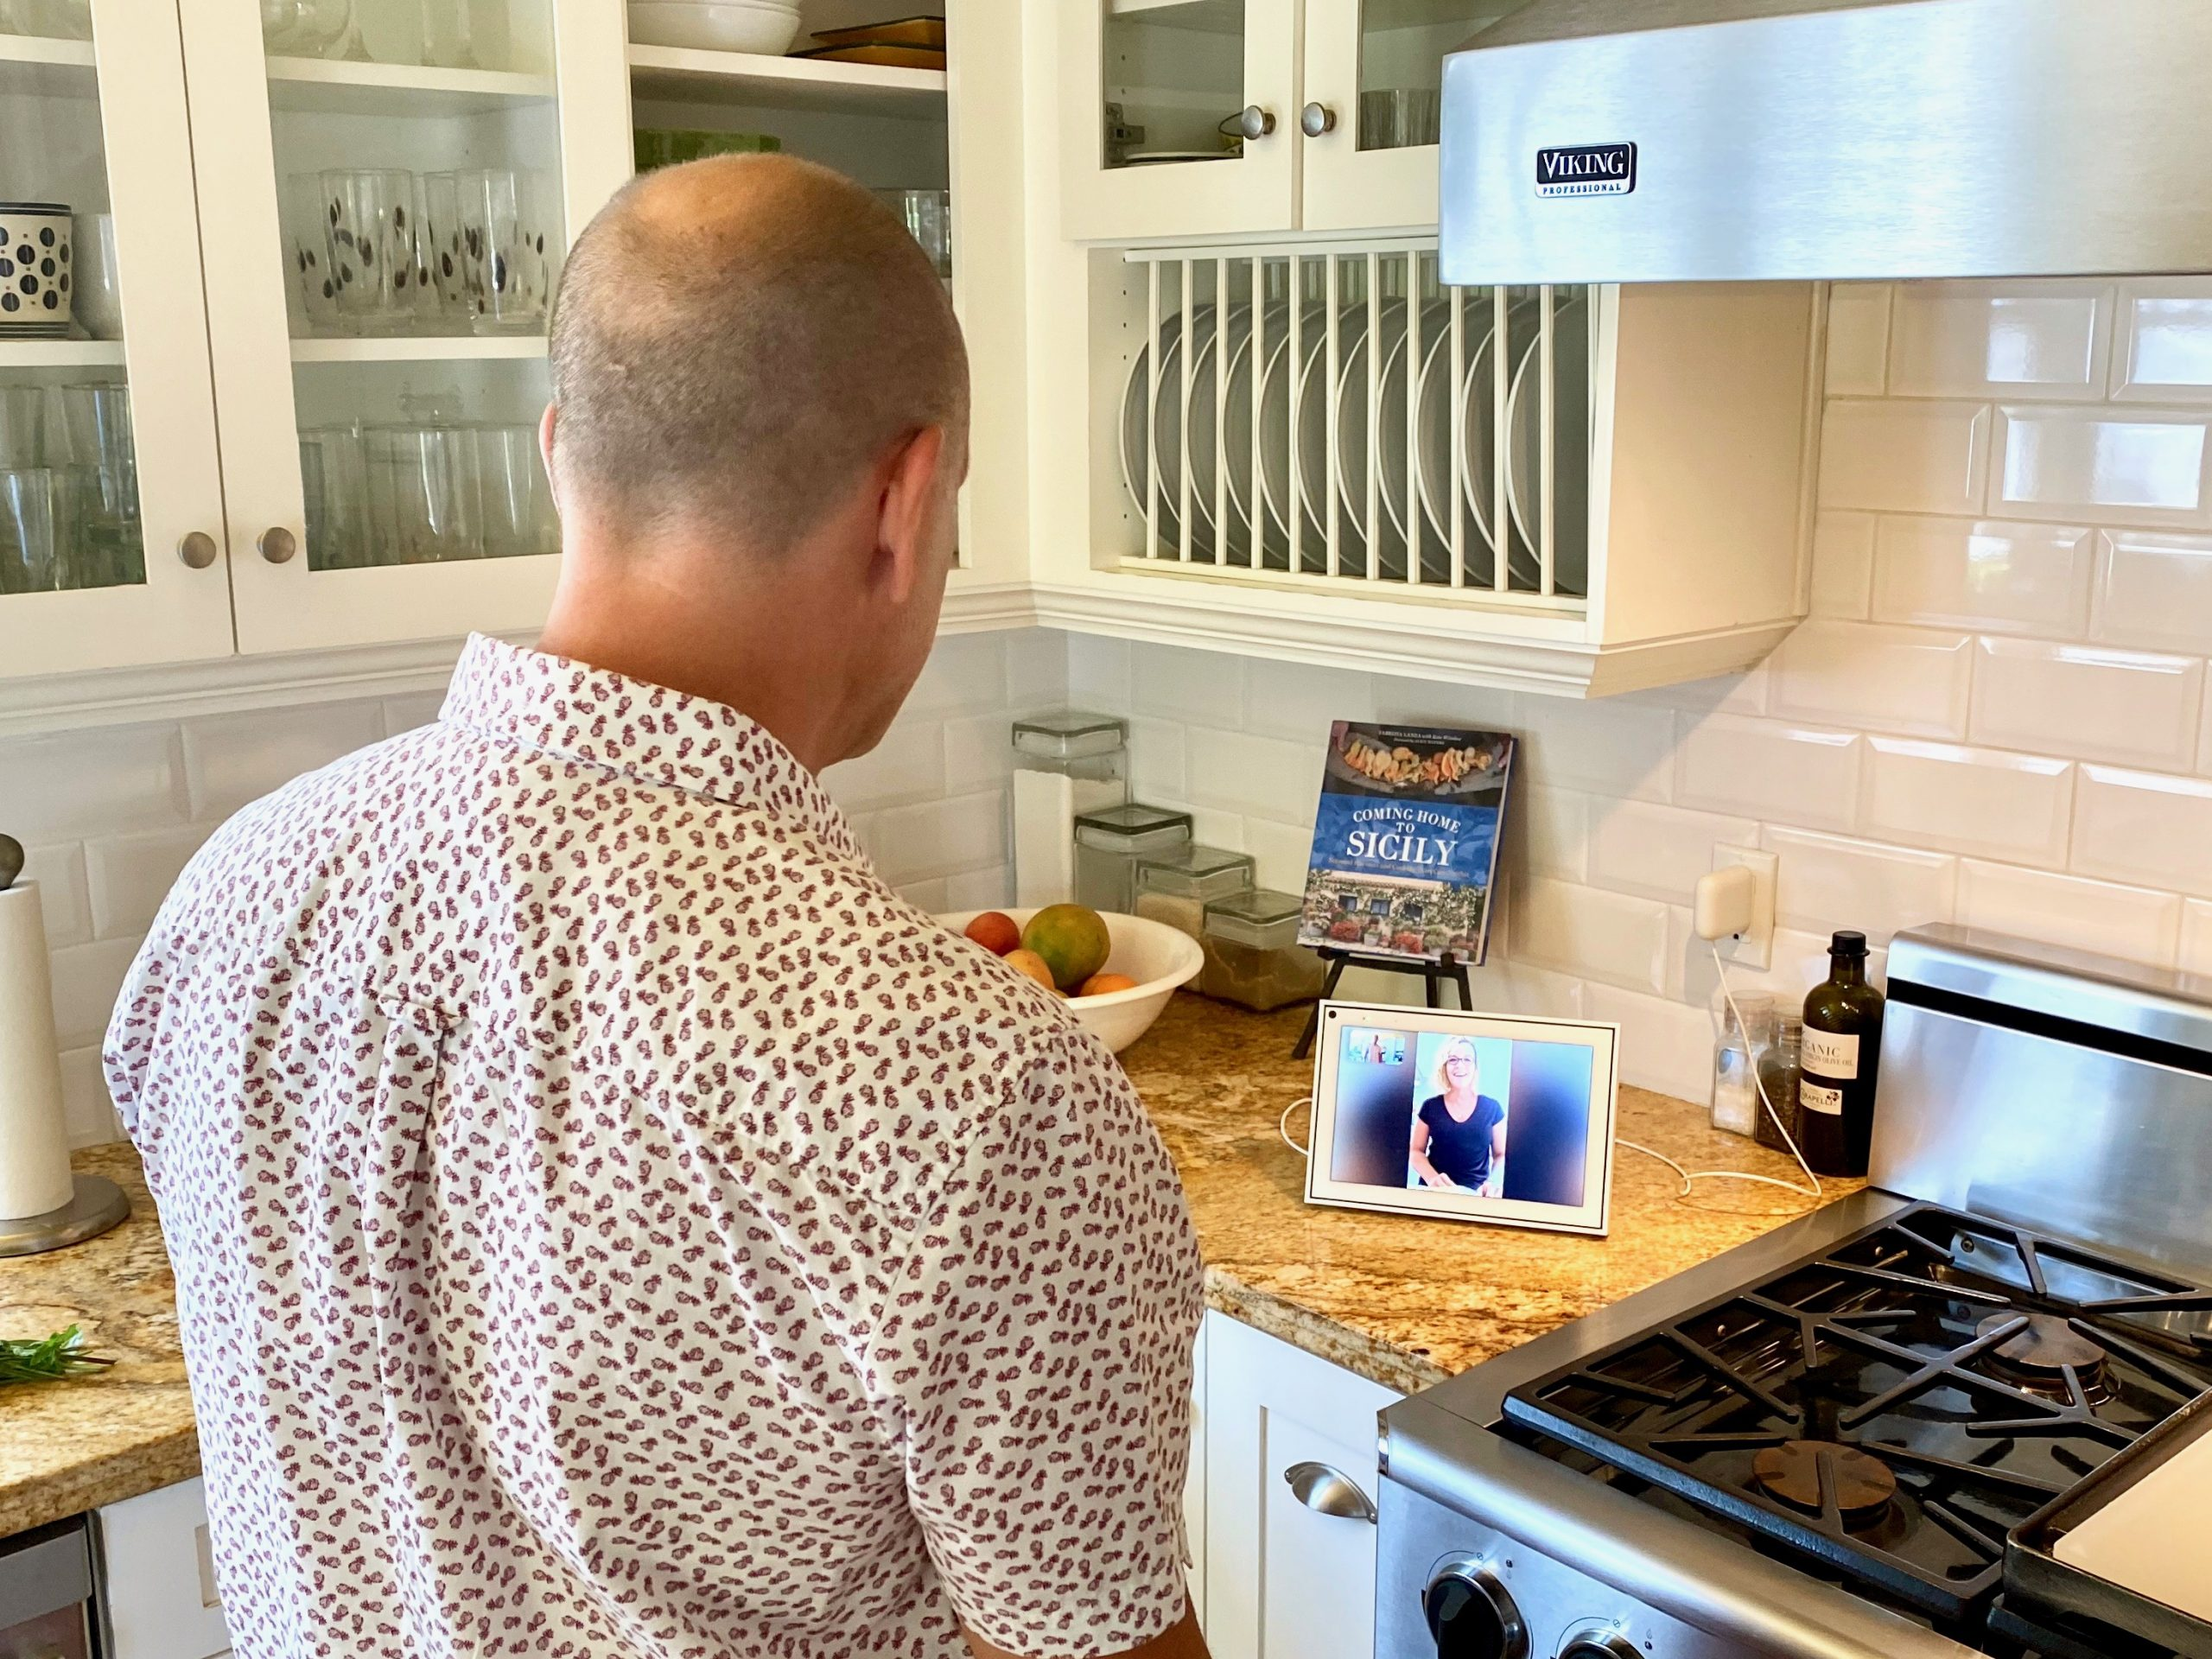 man uses Portal by Facebook in kitchen while videochatting with female friend